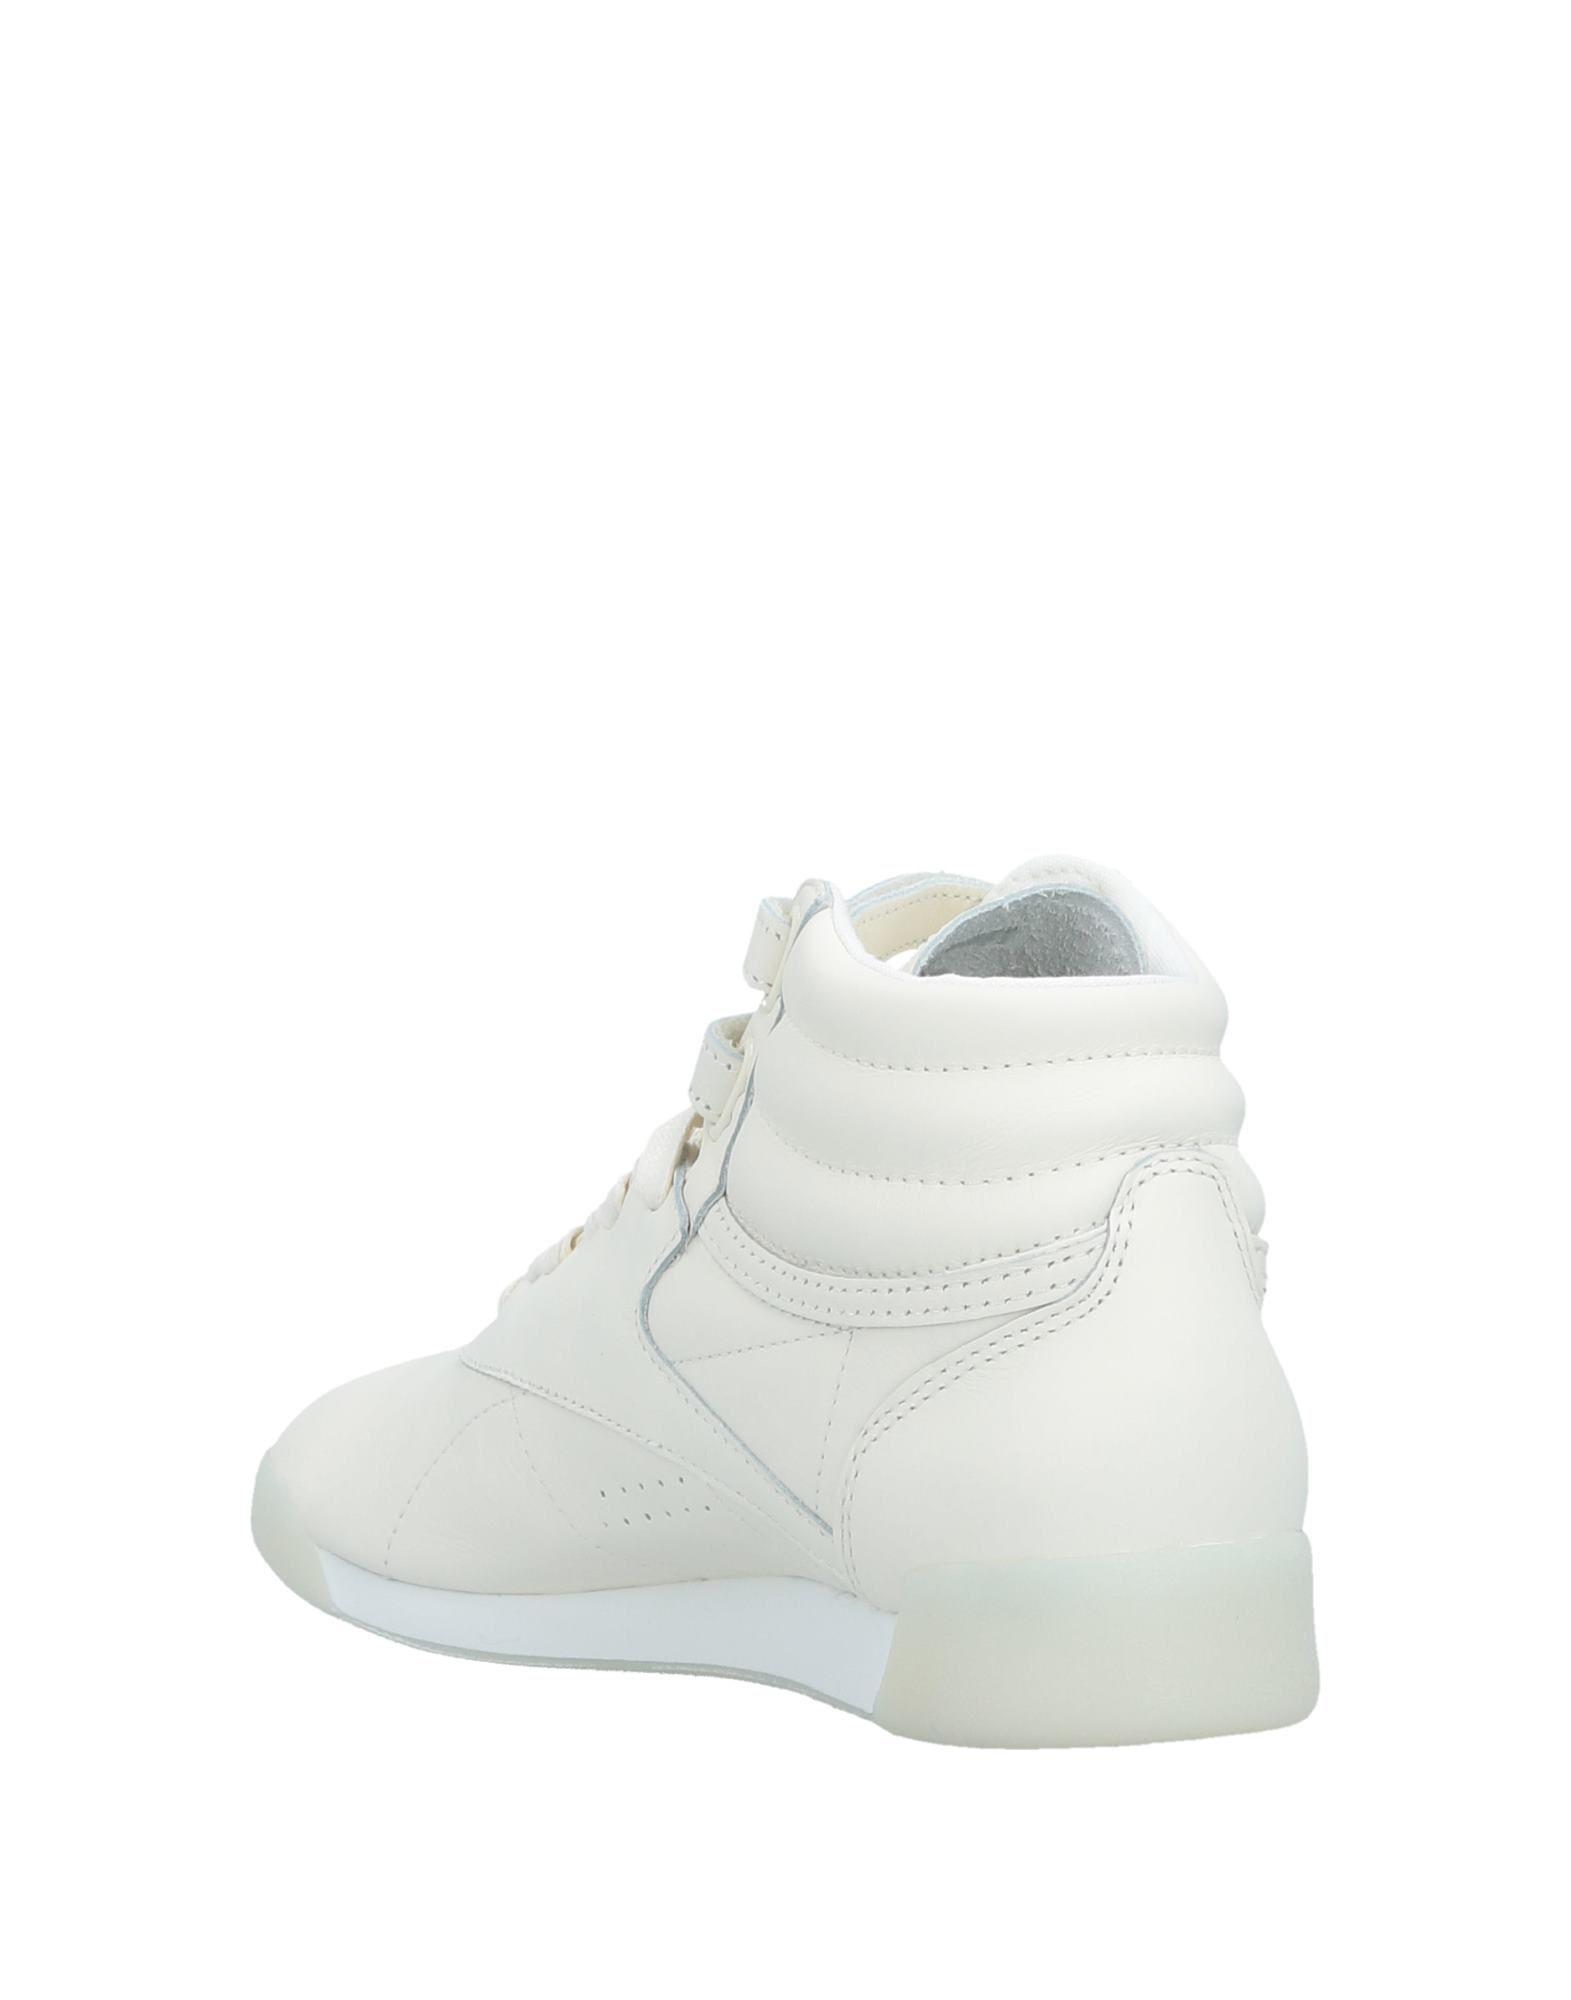 Reebok Leather High-tops & Sneakers in Ivory (White)